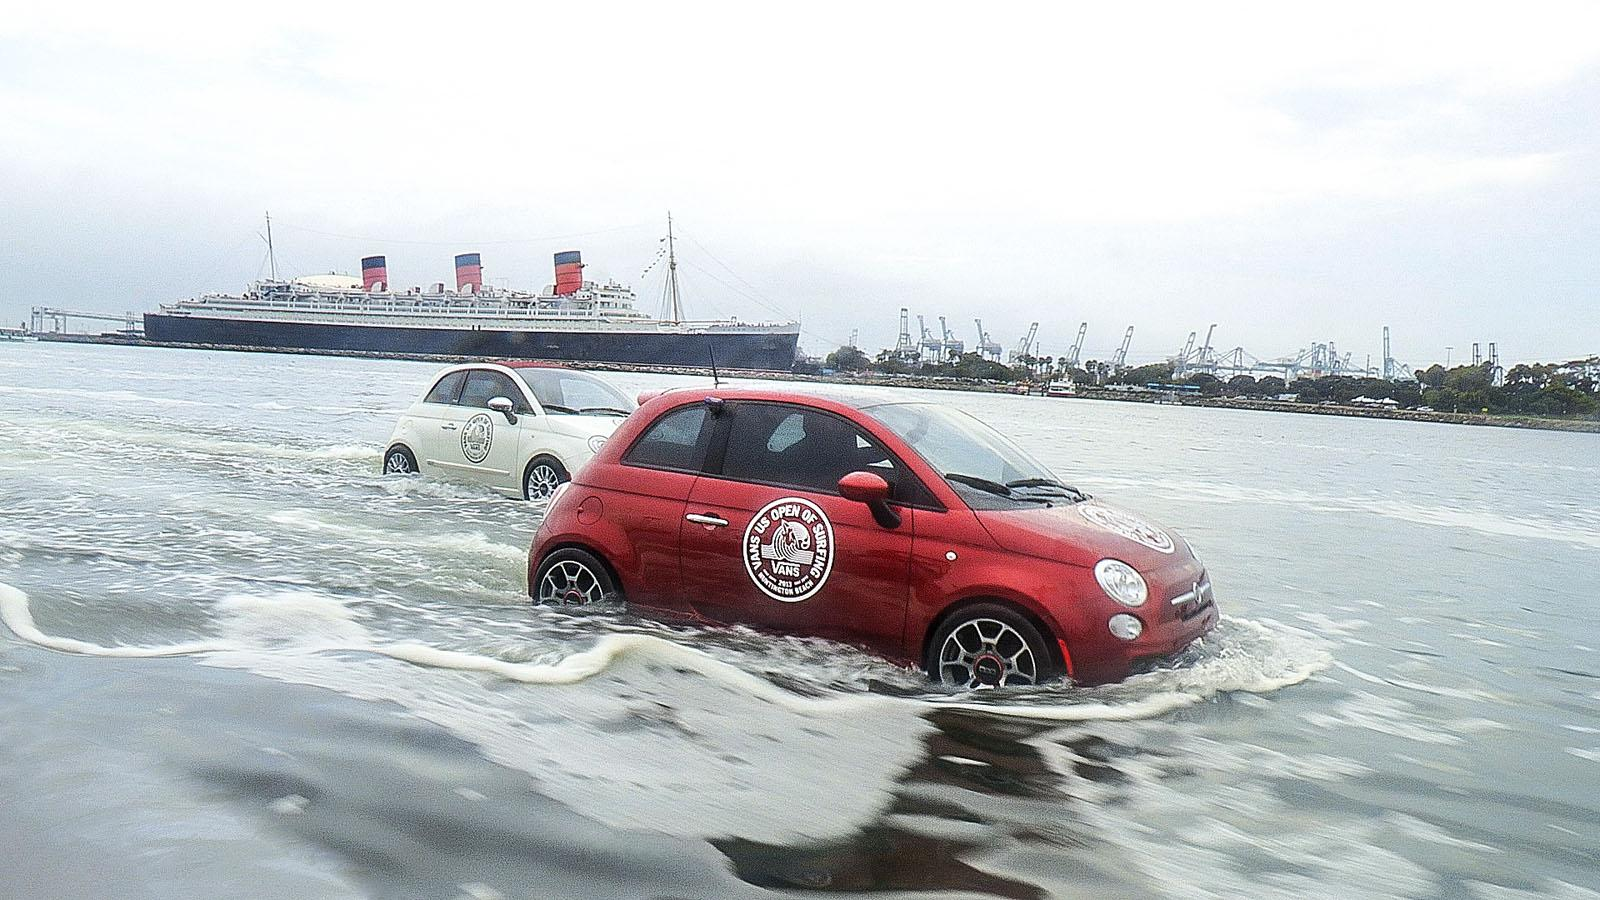 Fiat 500 personal watercrafts